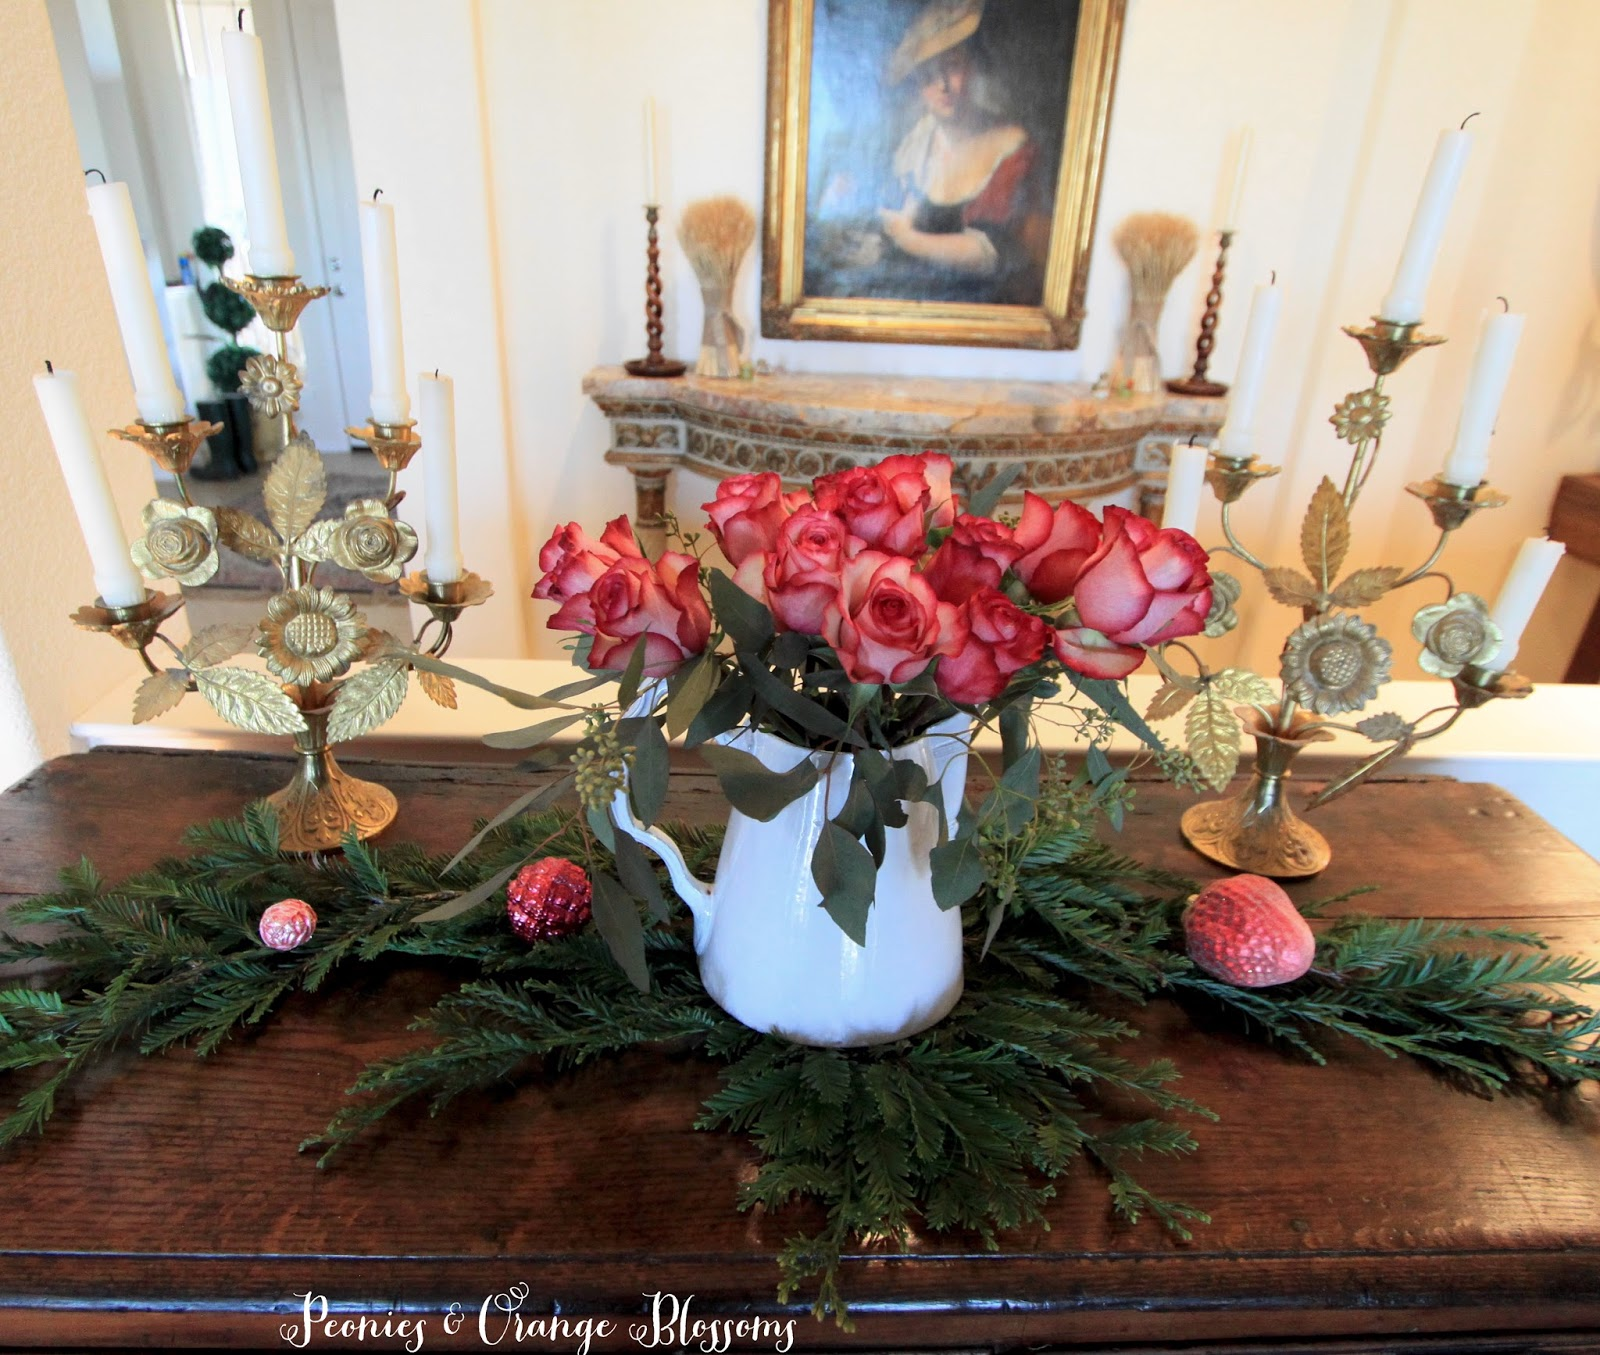 French Country Christmas Decor ideas and How to Create a French Country Vignette for the Holidays in 5 minutes!